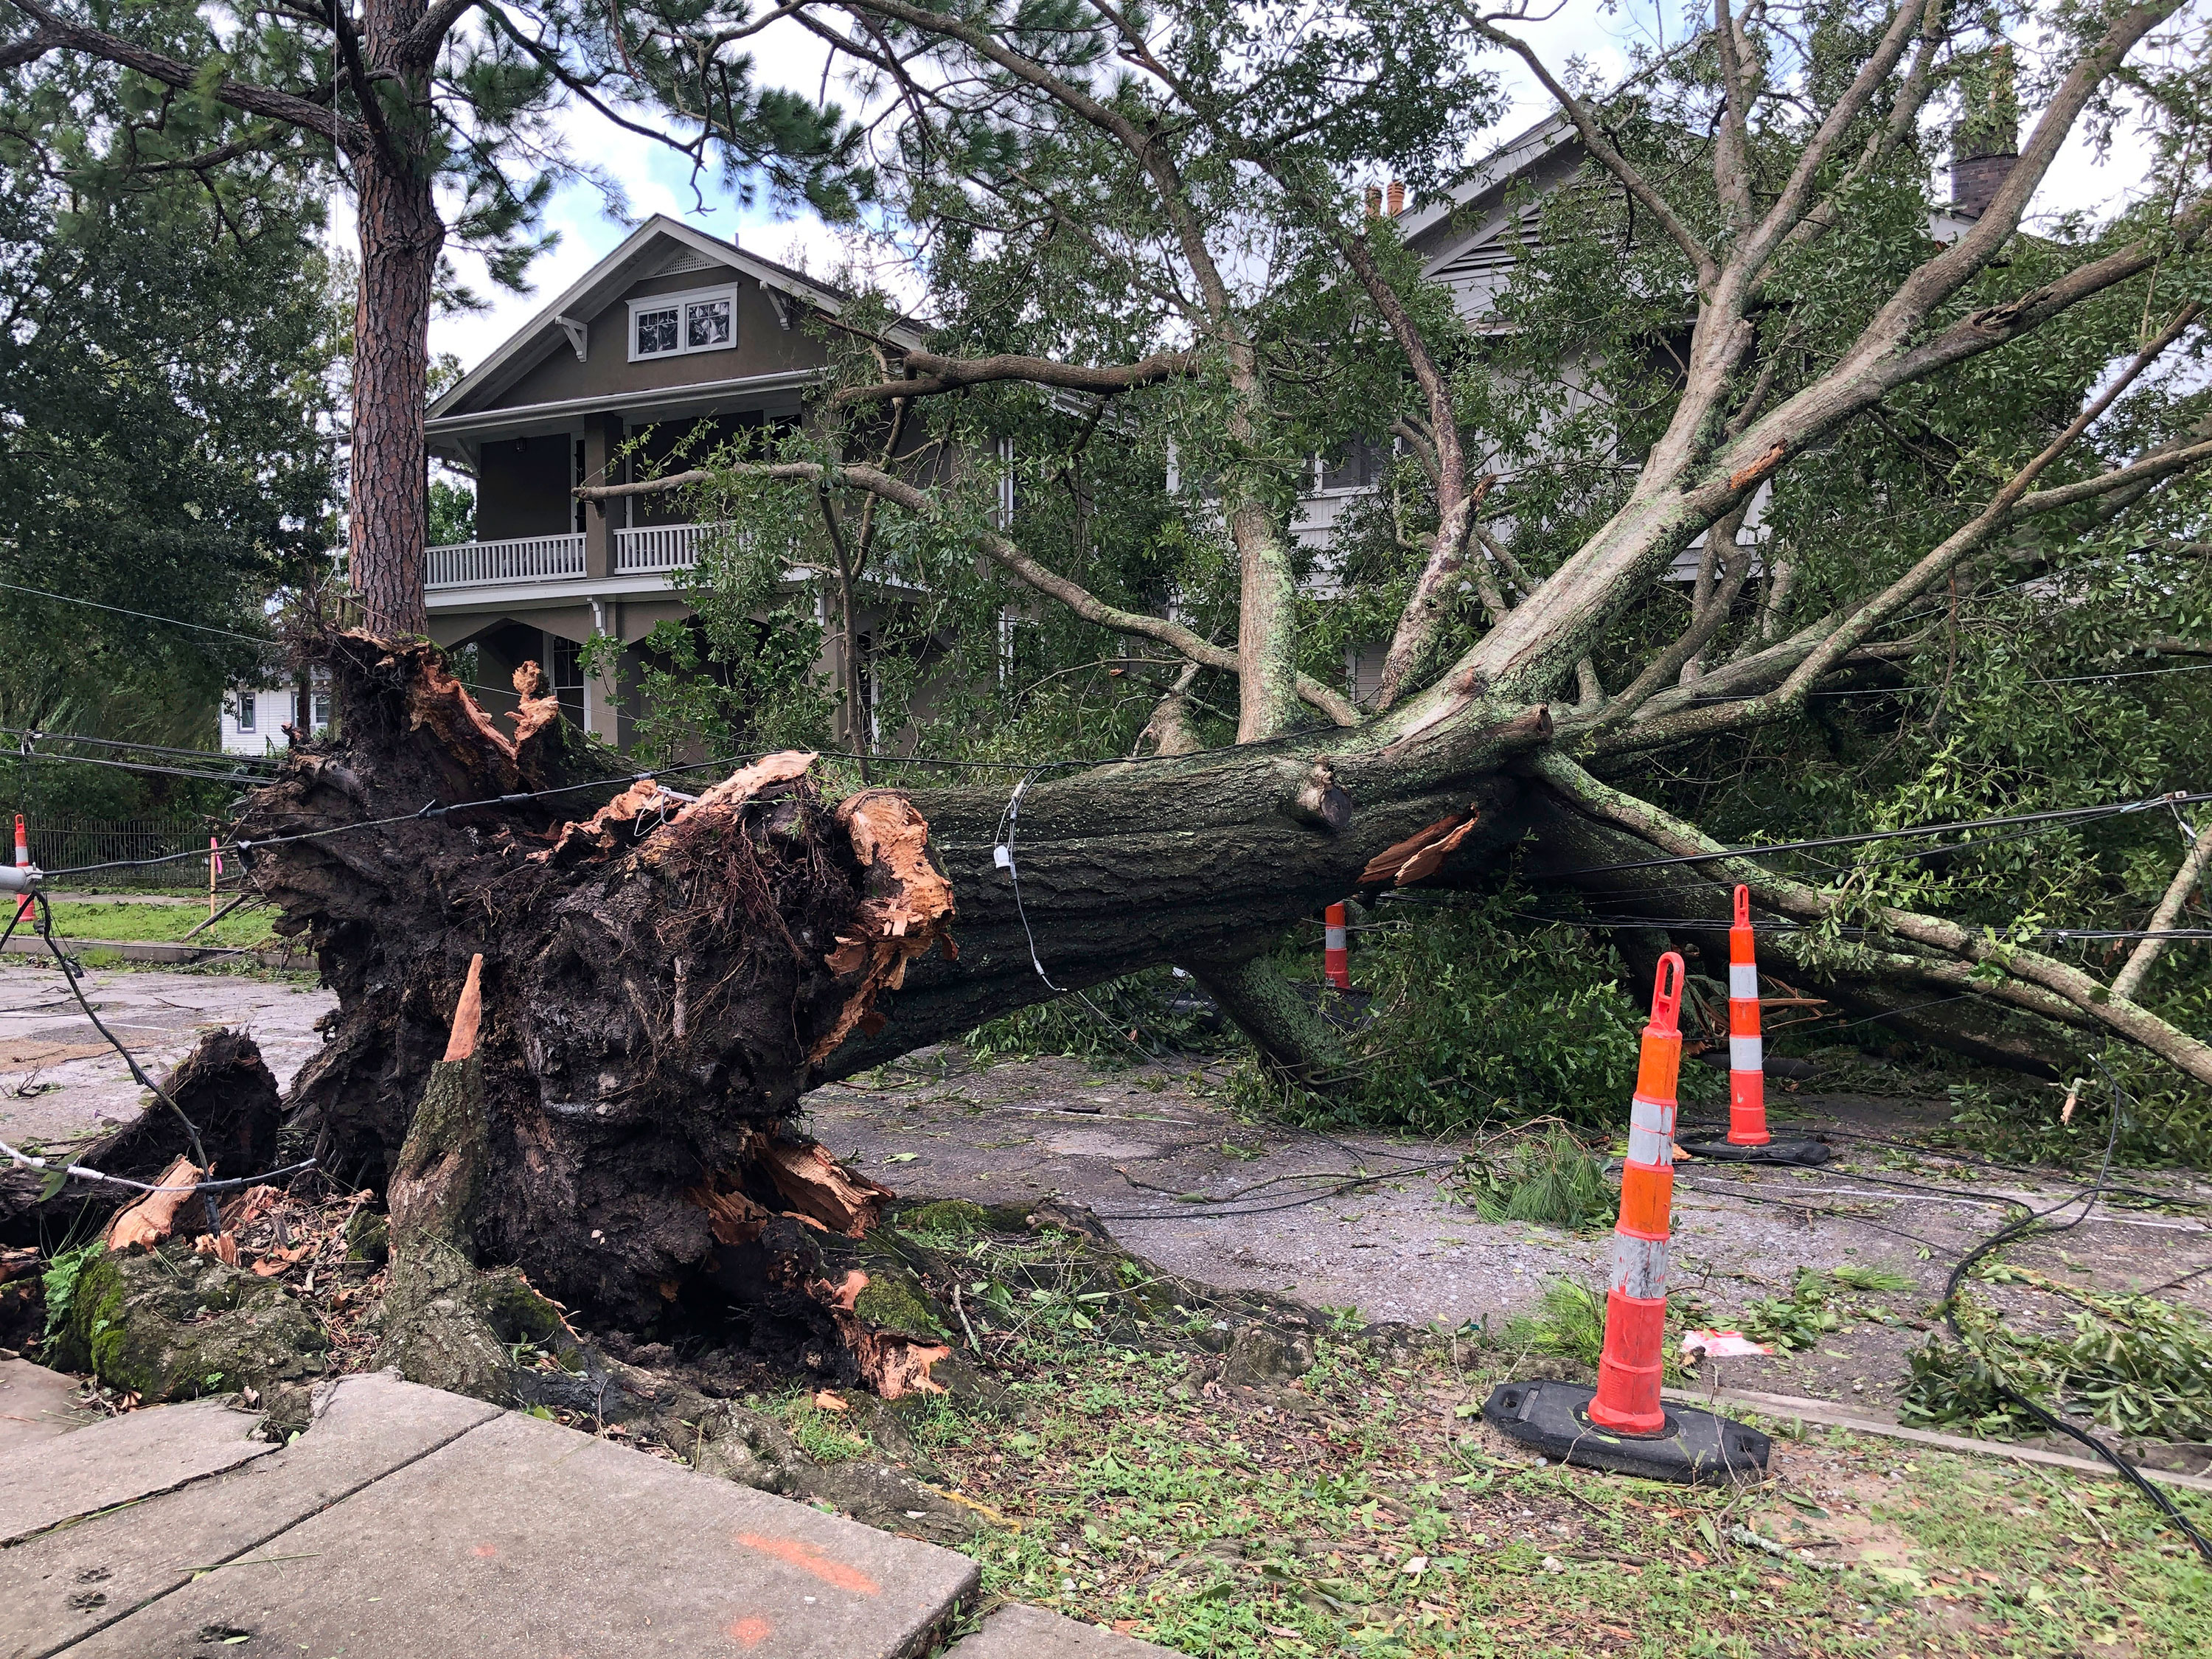 A massive oak tree stretches across a street in New Orleans.